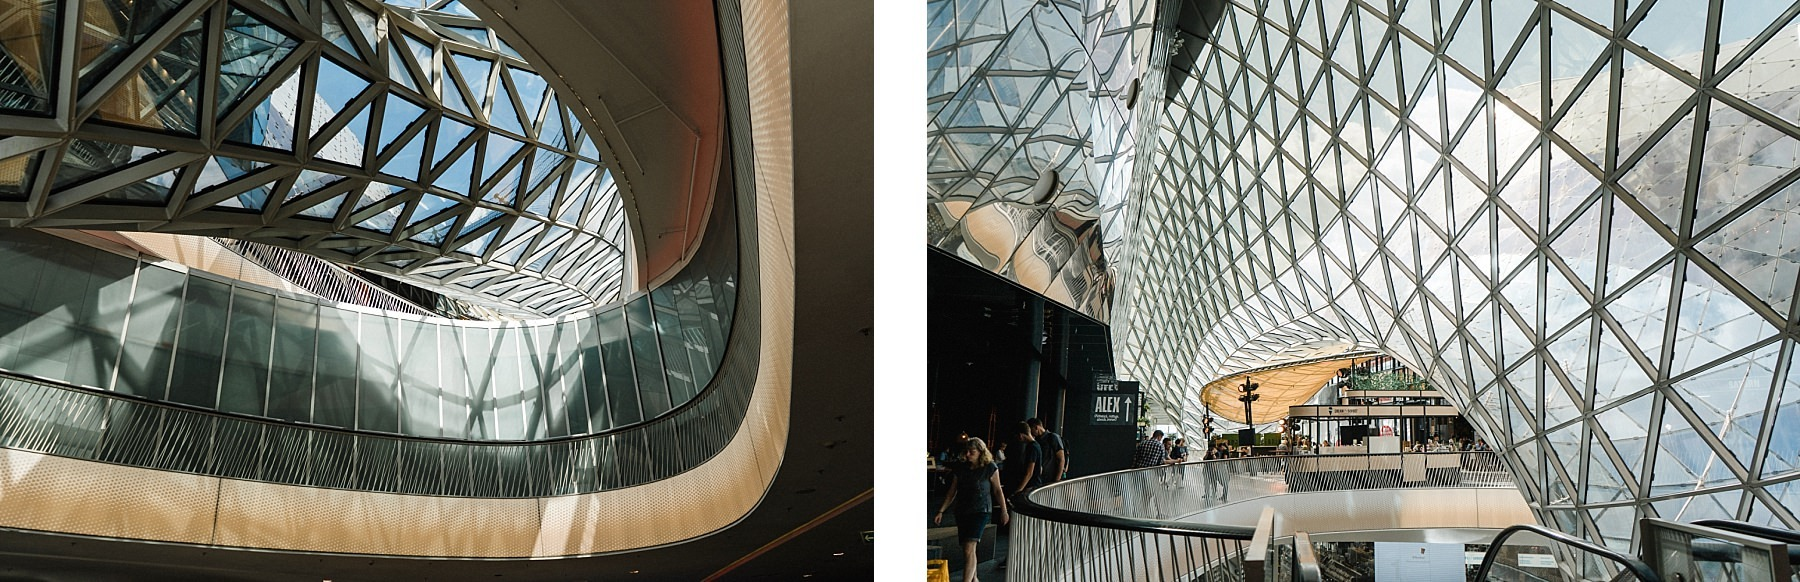 Francfort - My Zeil